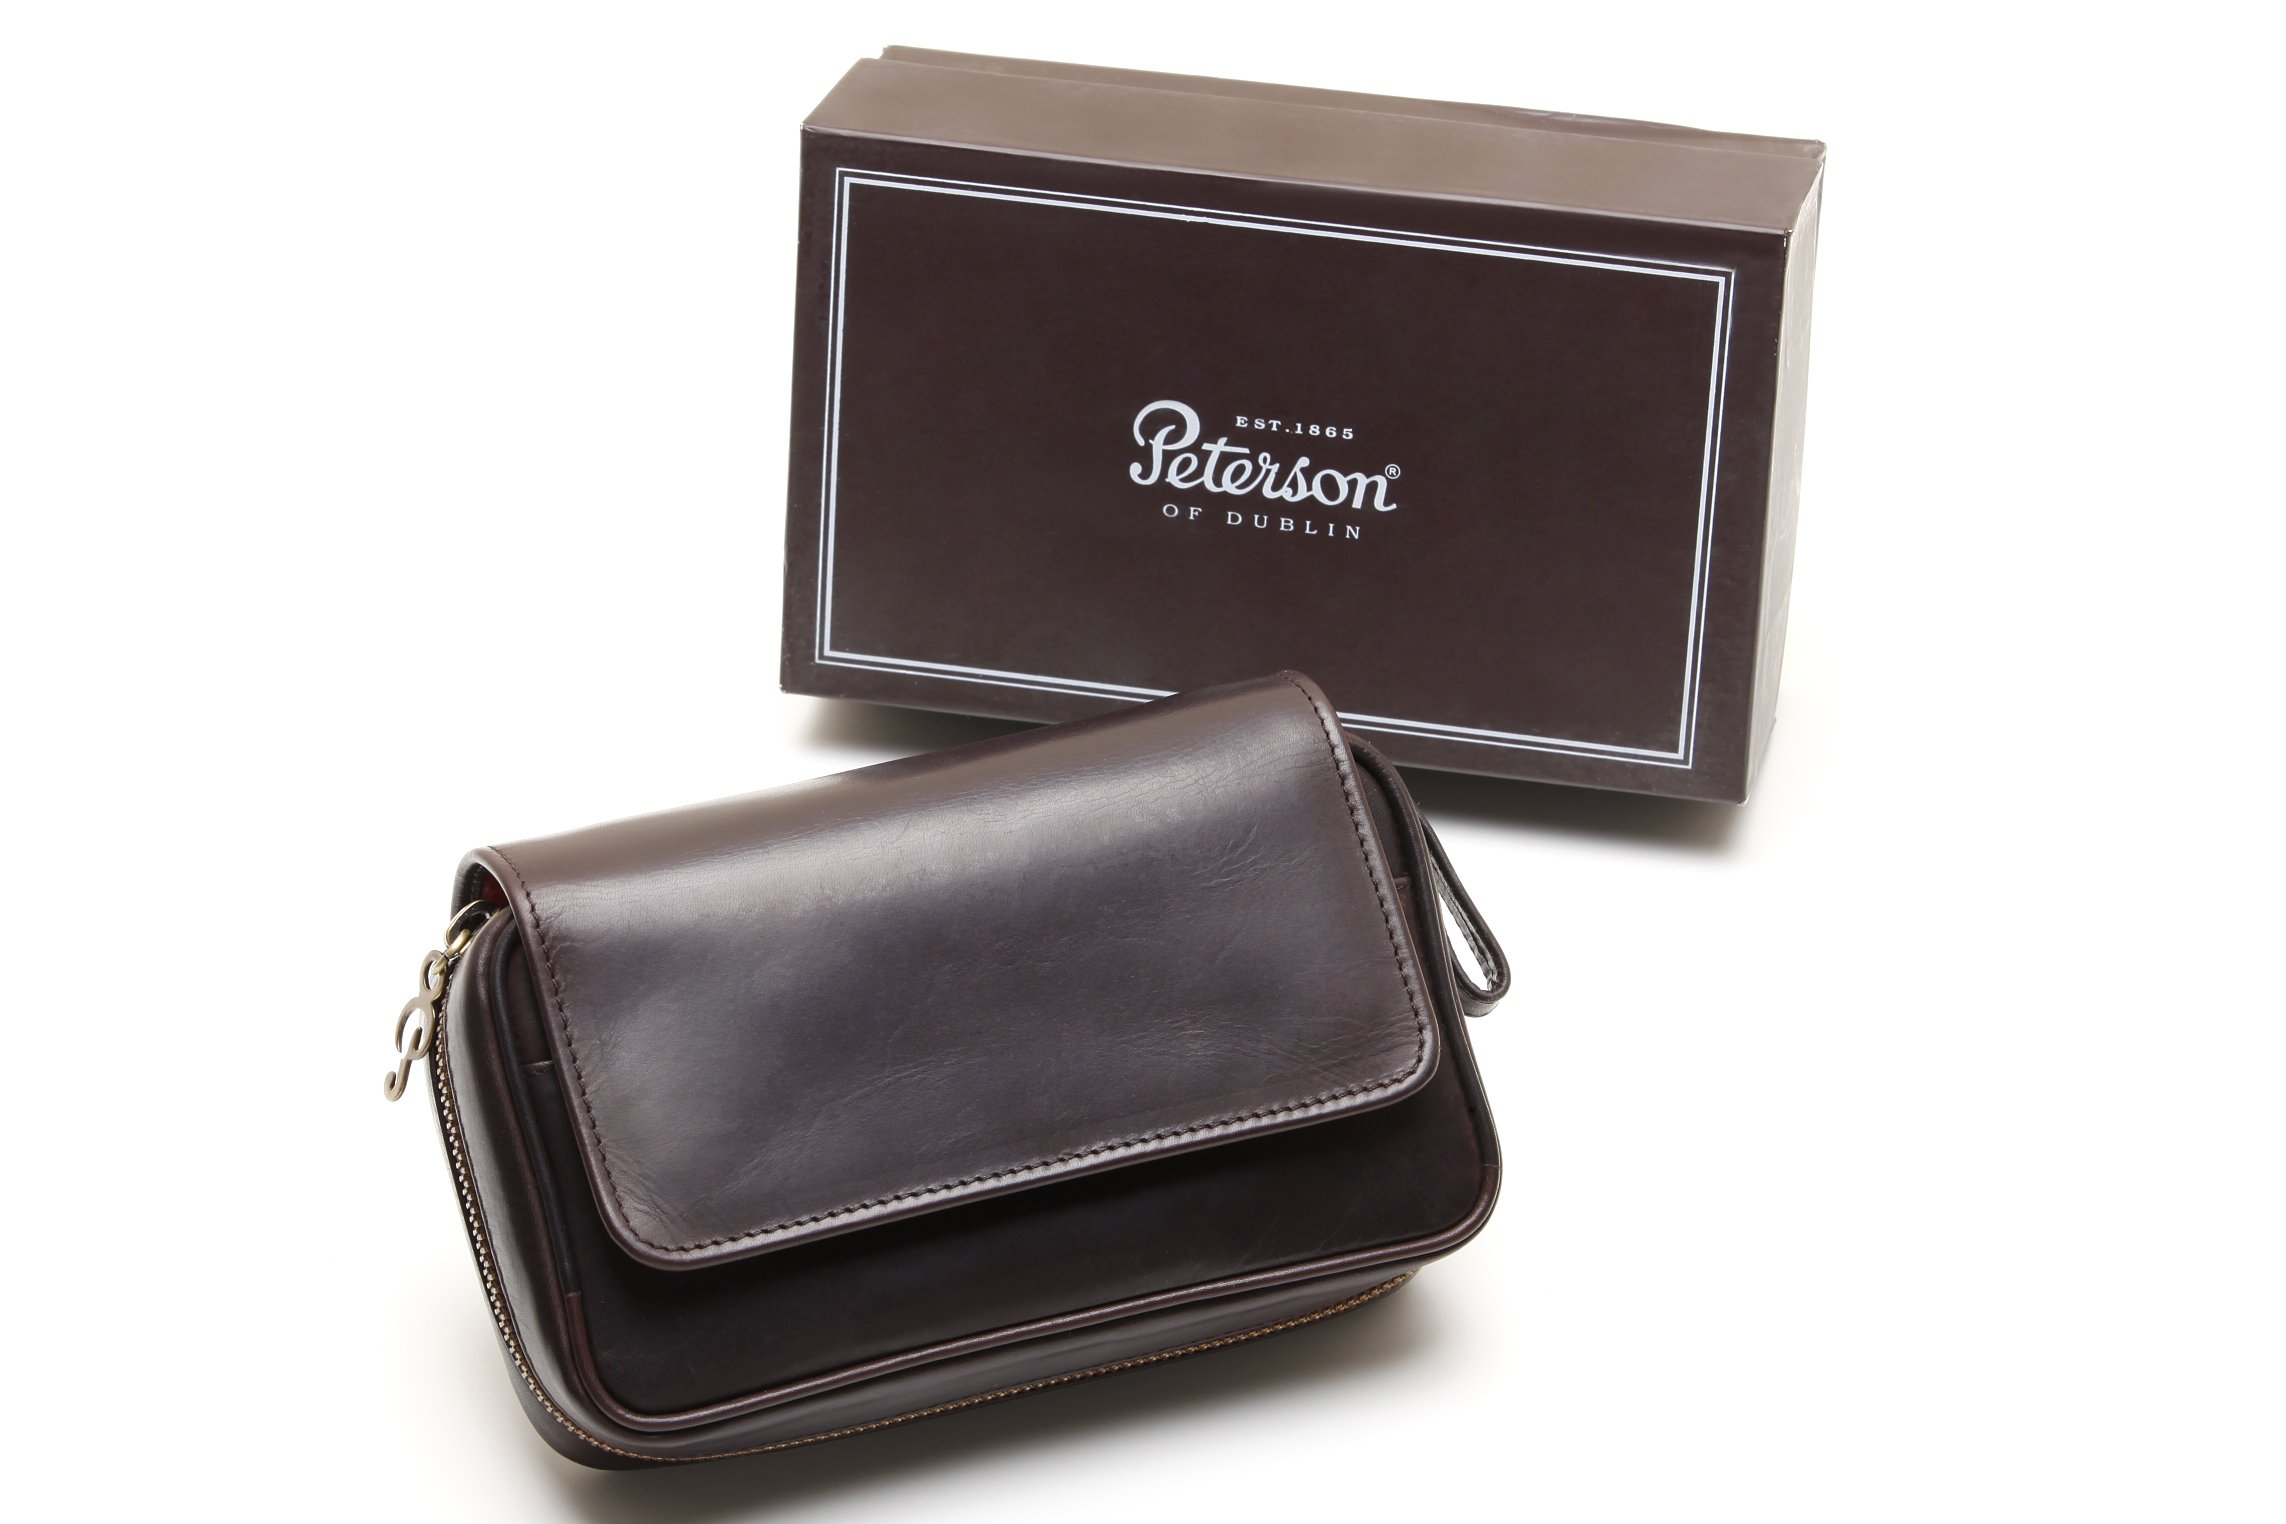 Peterson Deluxe Leather 2 Pipe Pouch